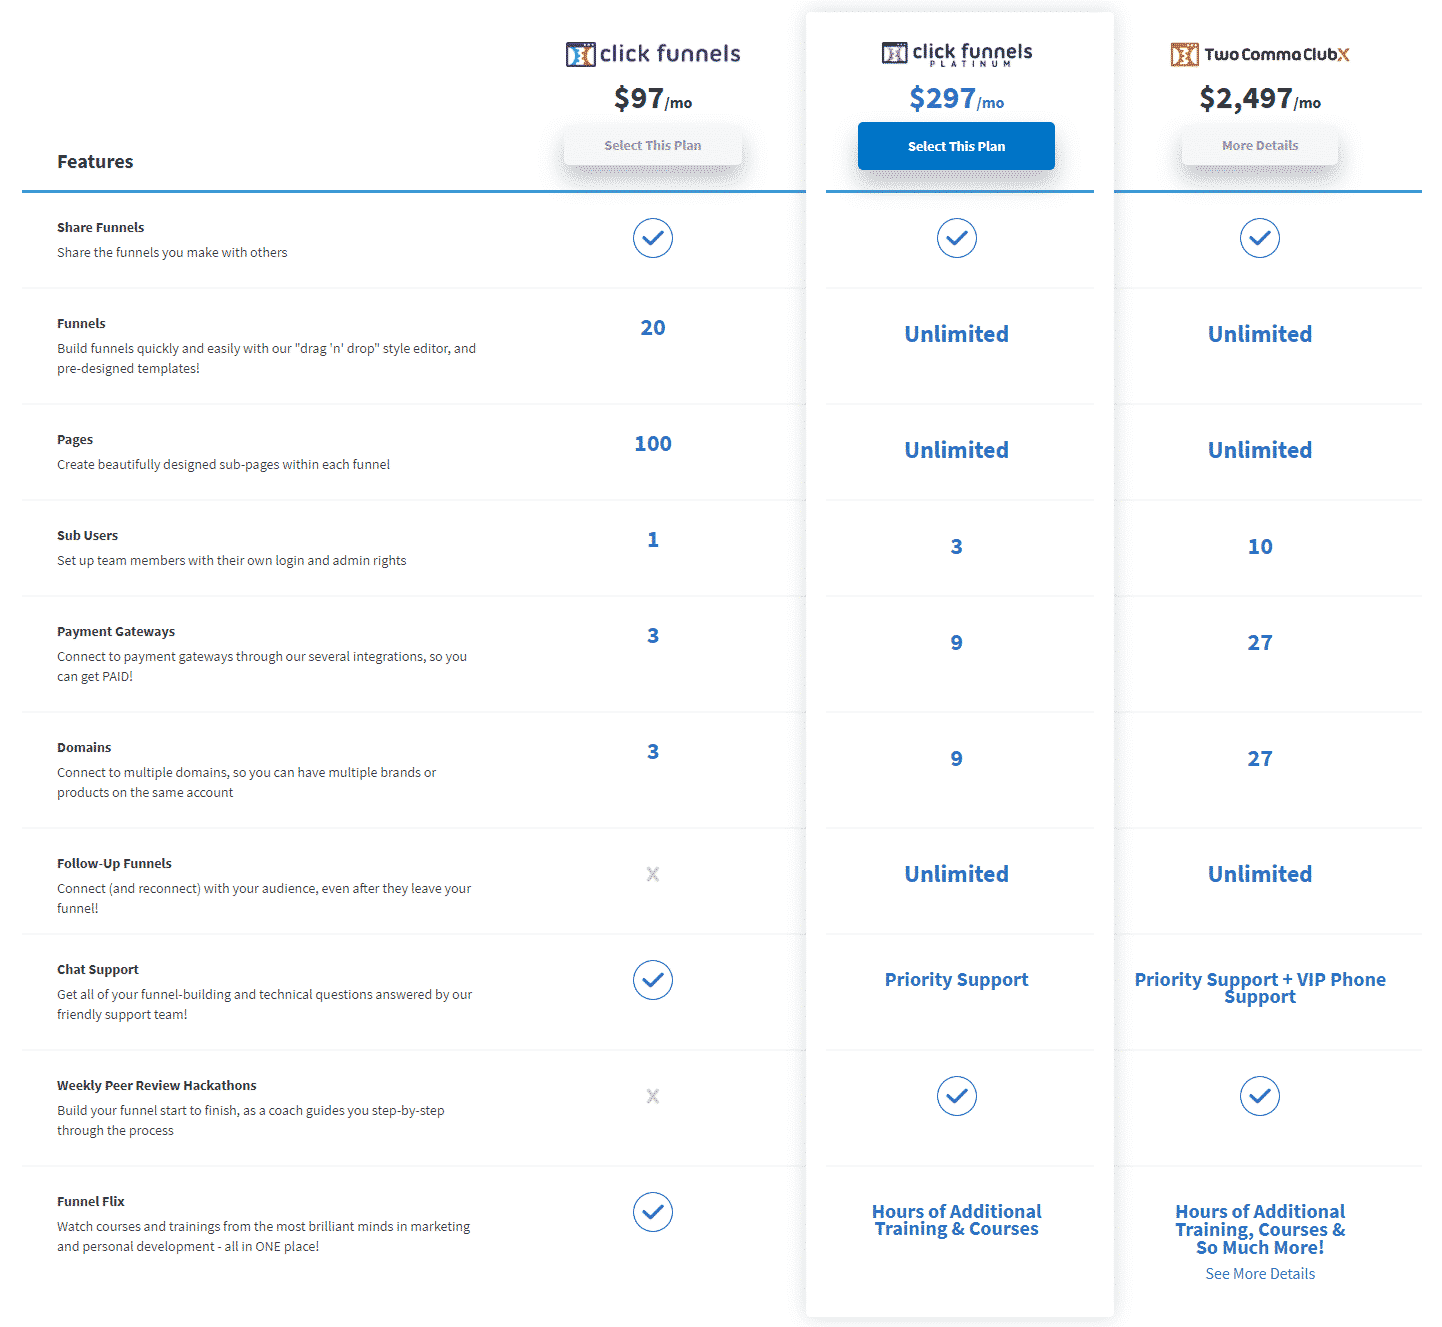 Plans Offered by ClickFunnels